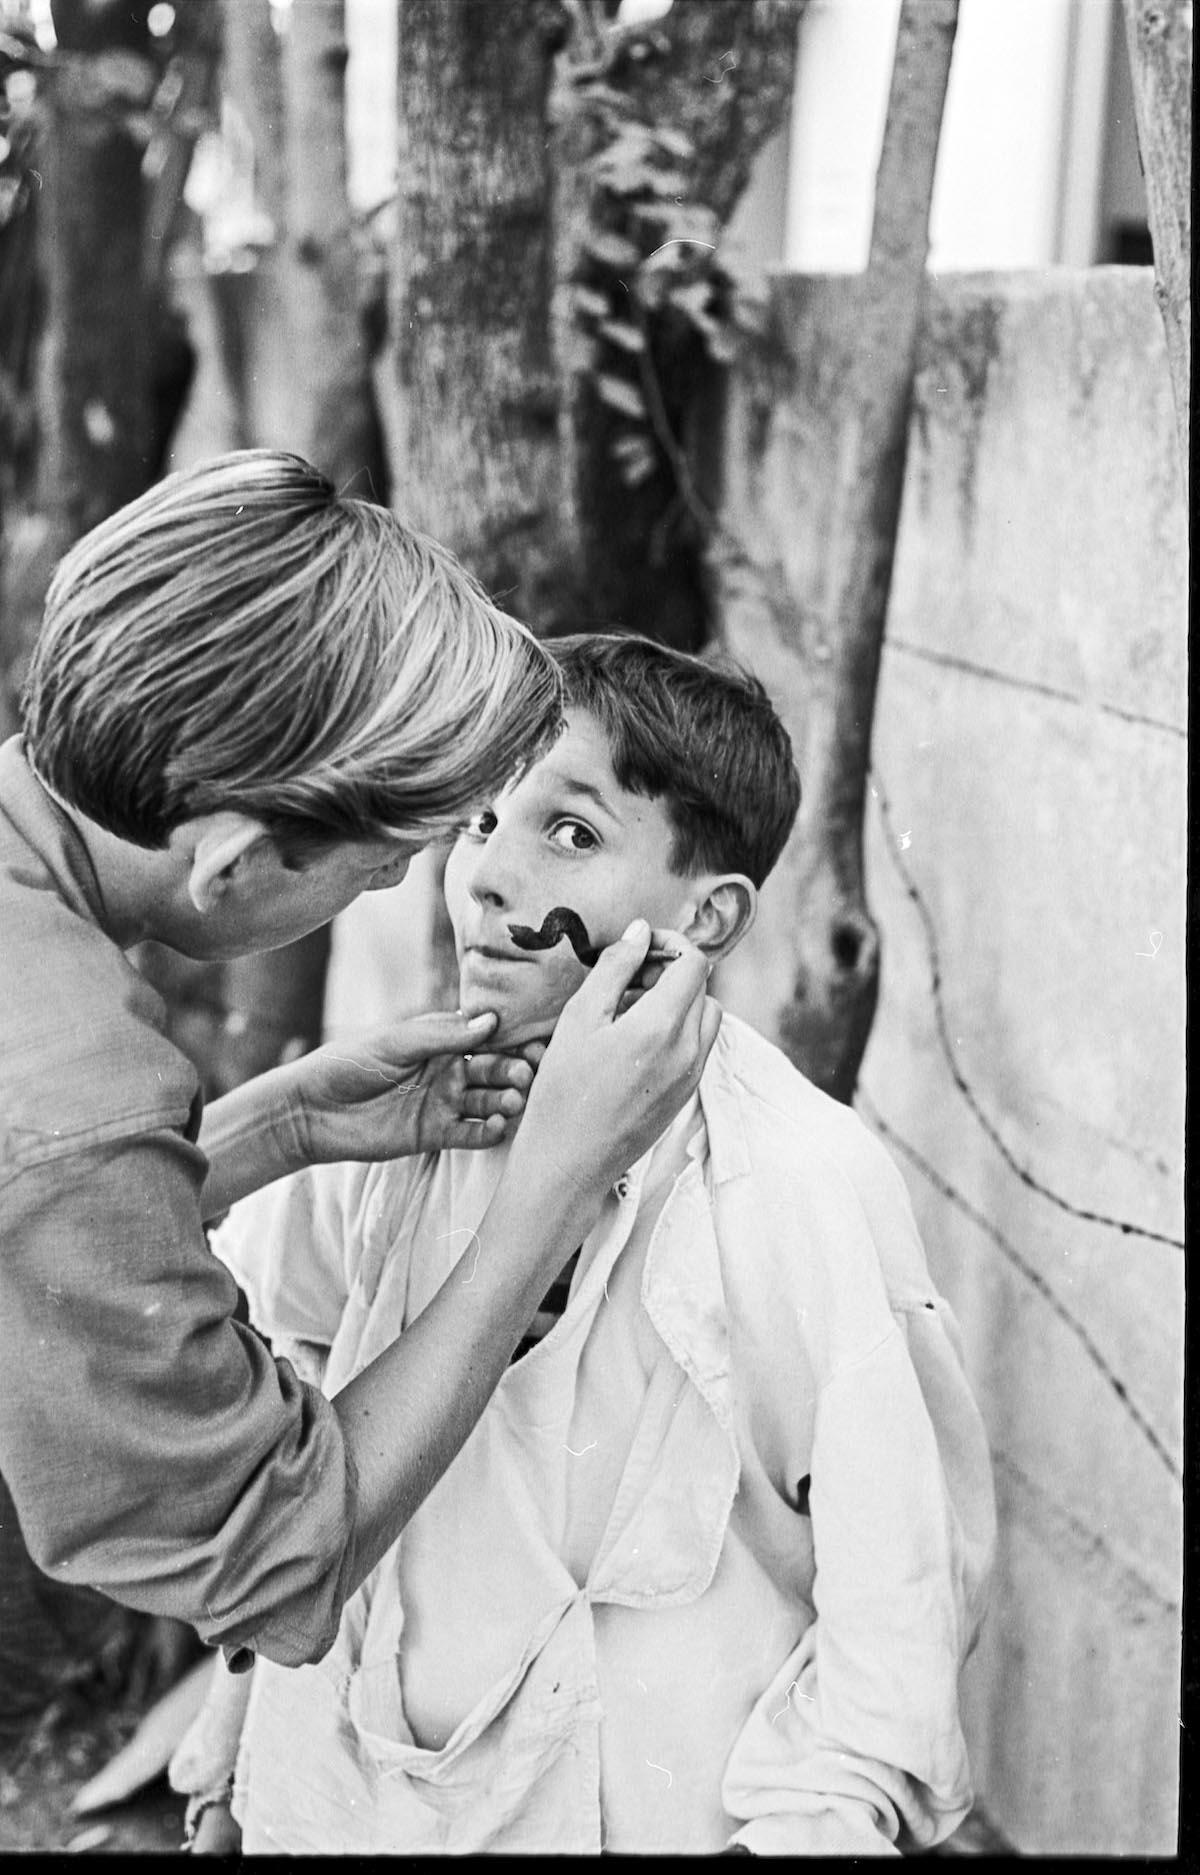 Child Getting His Face Painted